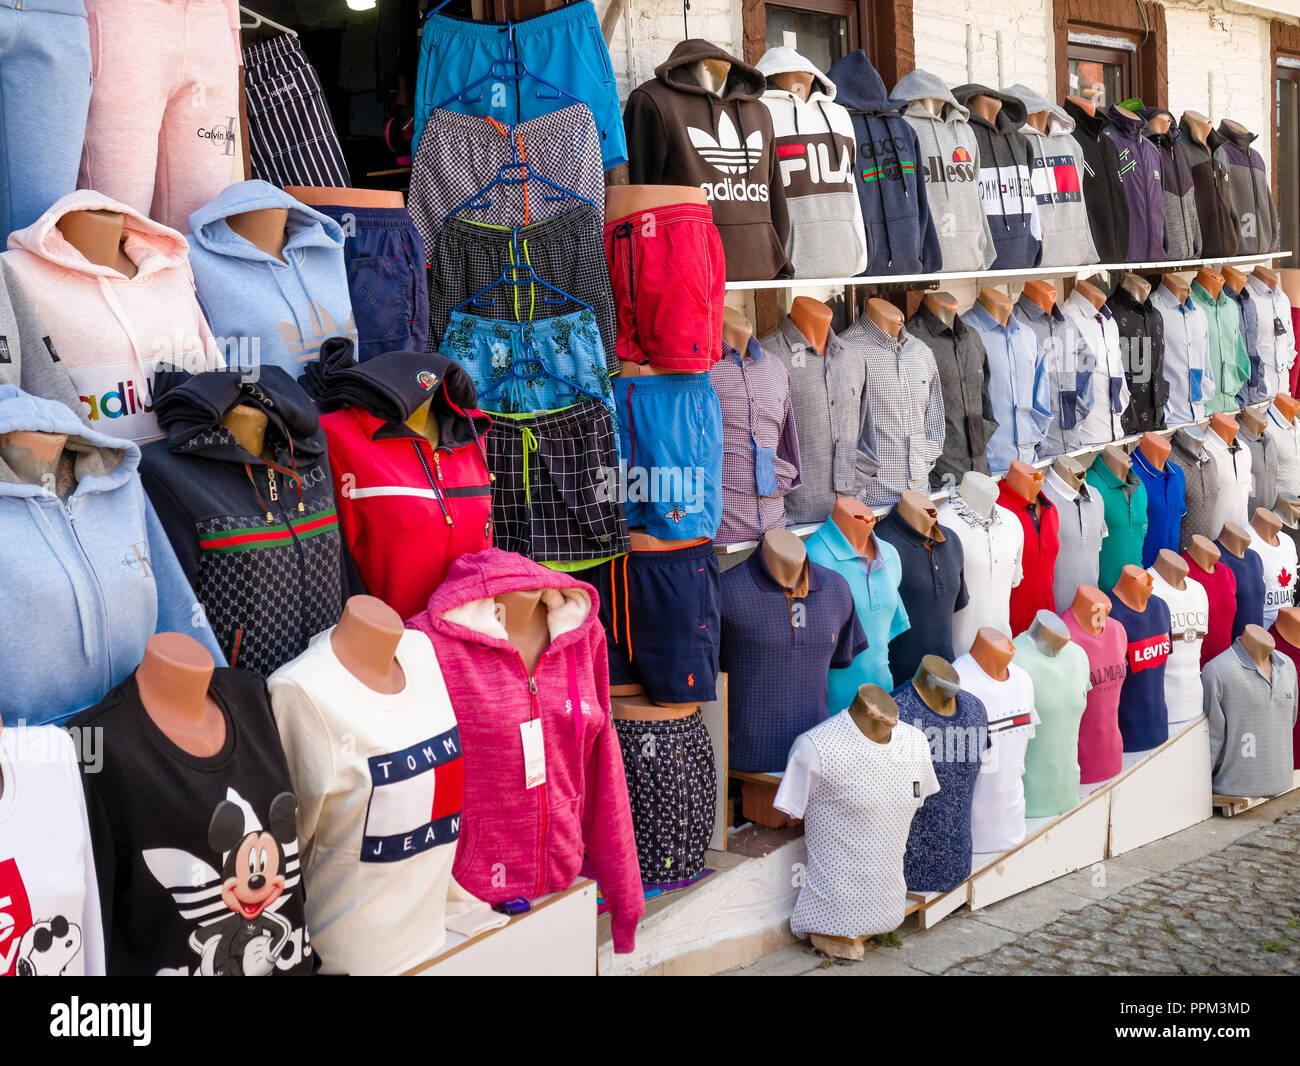 b207ee8c1e4b Counterfeit or fake designer clothing for sale outside shop in the busy  harbour area of Kalkan